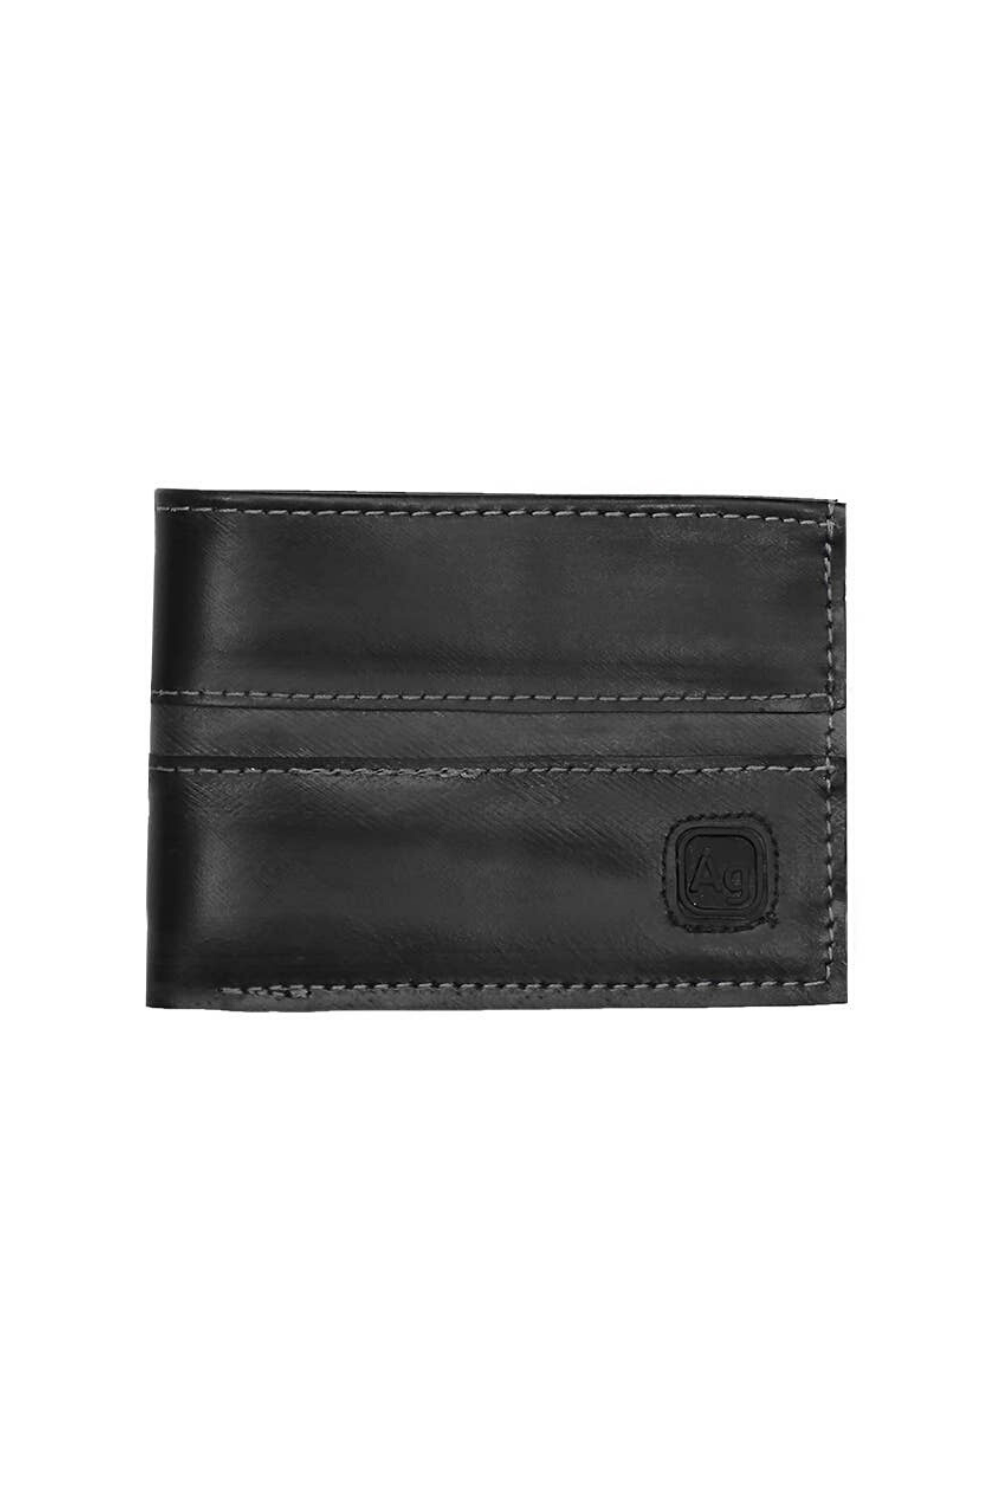 Alchemy Goods Men's Wallets Silver Franklin Wallet